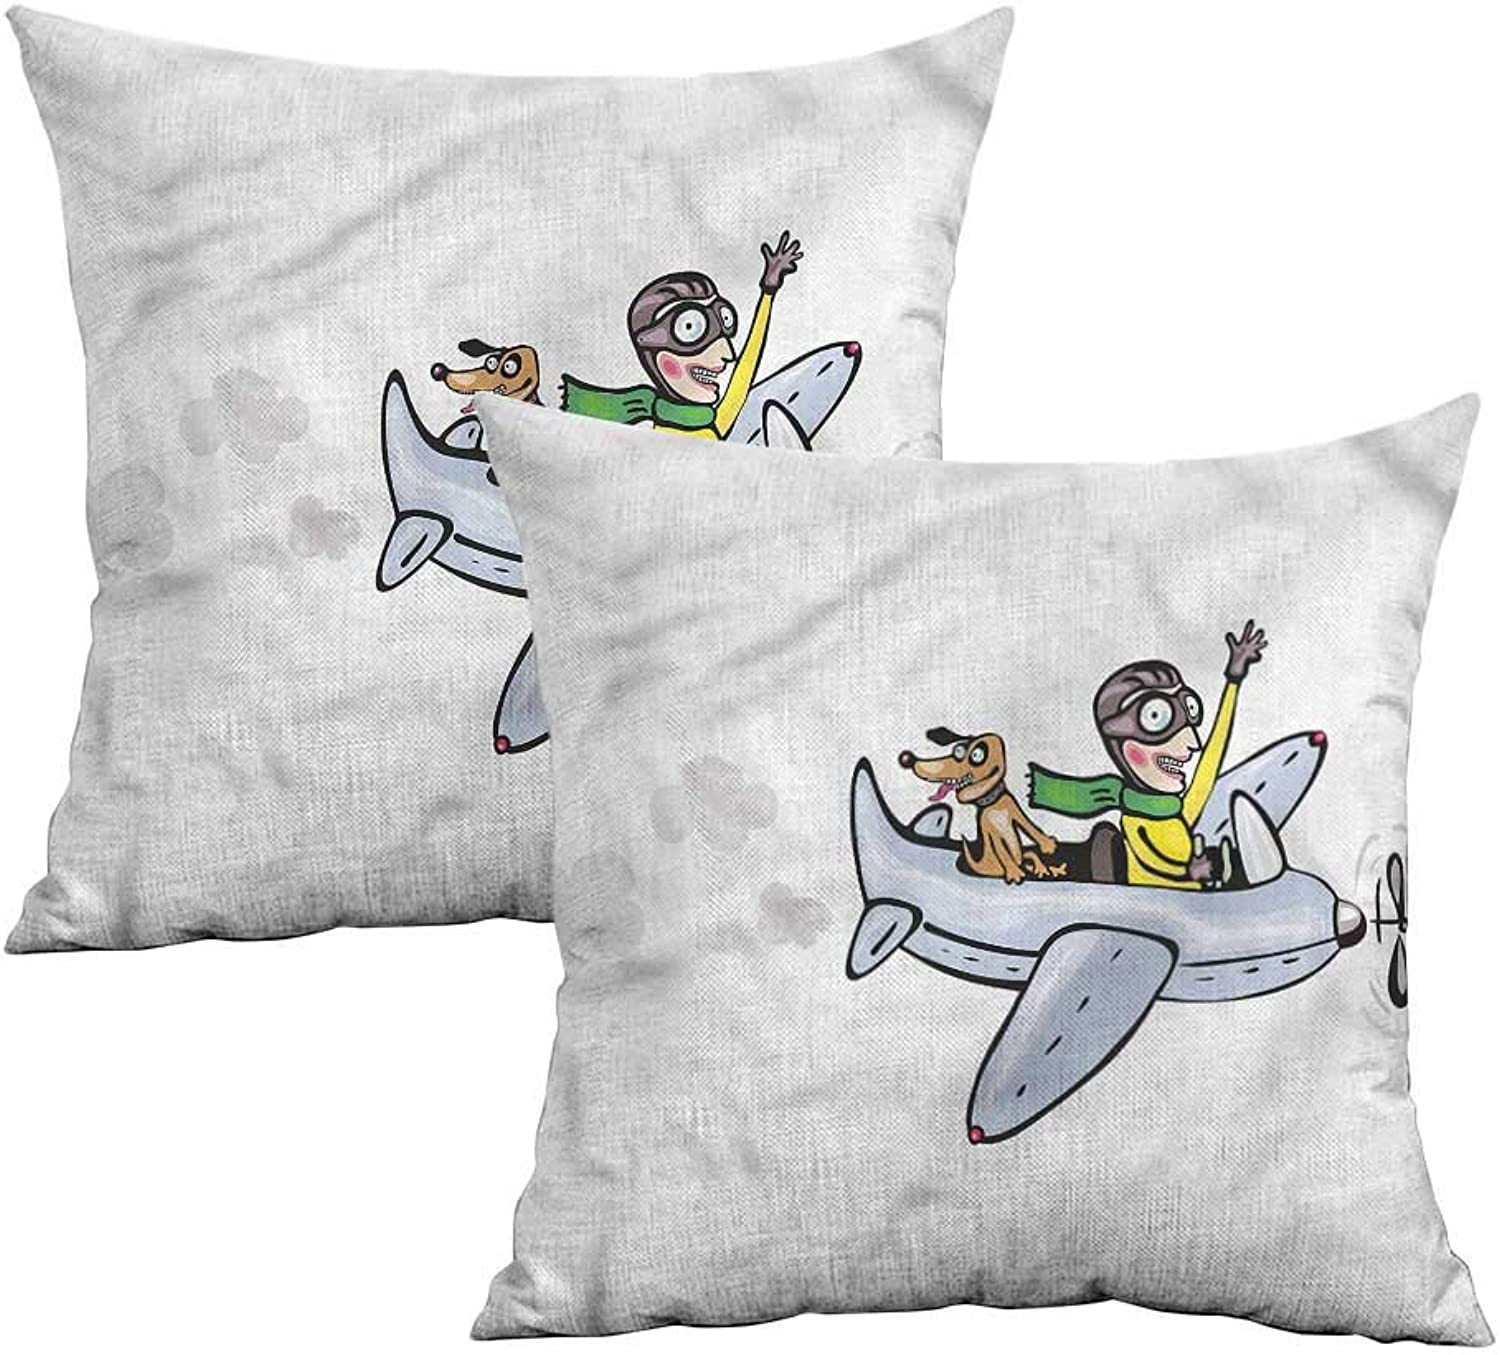 Khaki home Boys Room Square Zippered Pillowcase Air Doodle Style Flight Square Body Pillowcase Cushion Cases Pillowcases for Sofa Bedroom Car W 20  x L 20  2 pcs